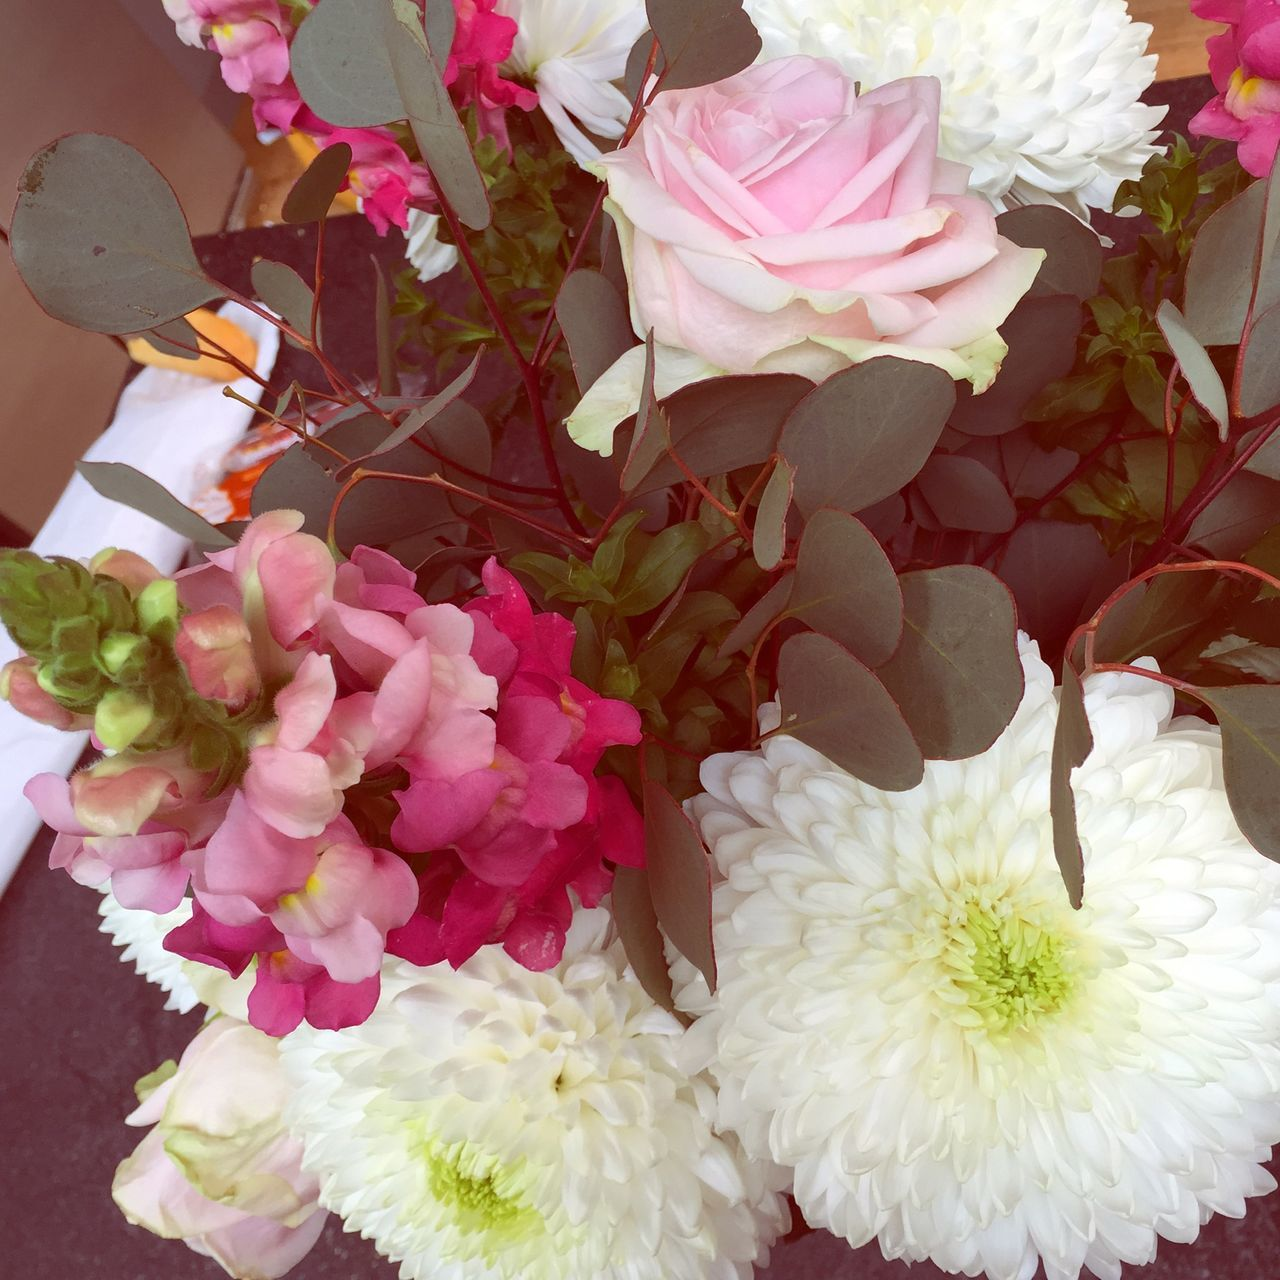 flower, petal, freshness, fragility, pink color, flower head, beauty in nature, nature, bouquet, no people, close-up, day, outdoors, blooming, low section, florist